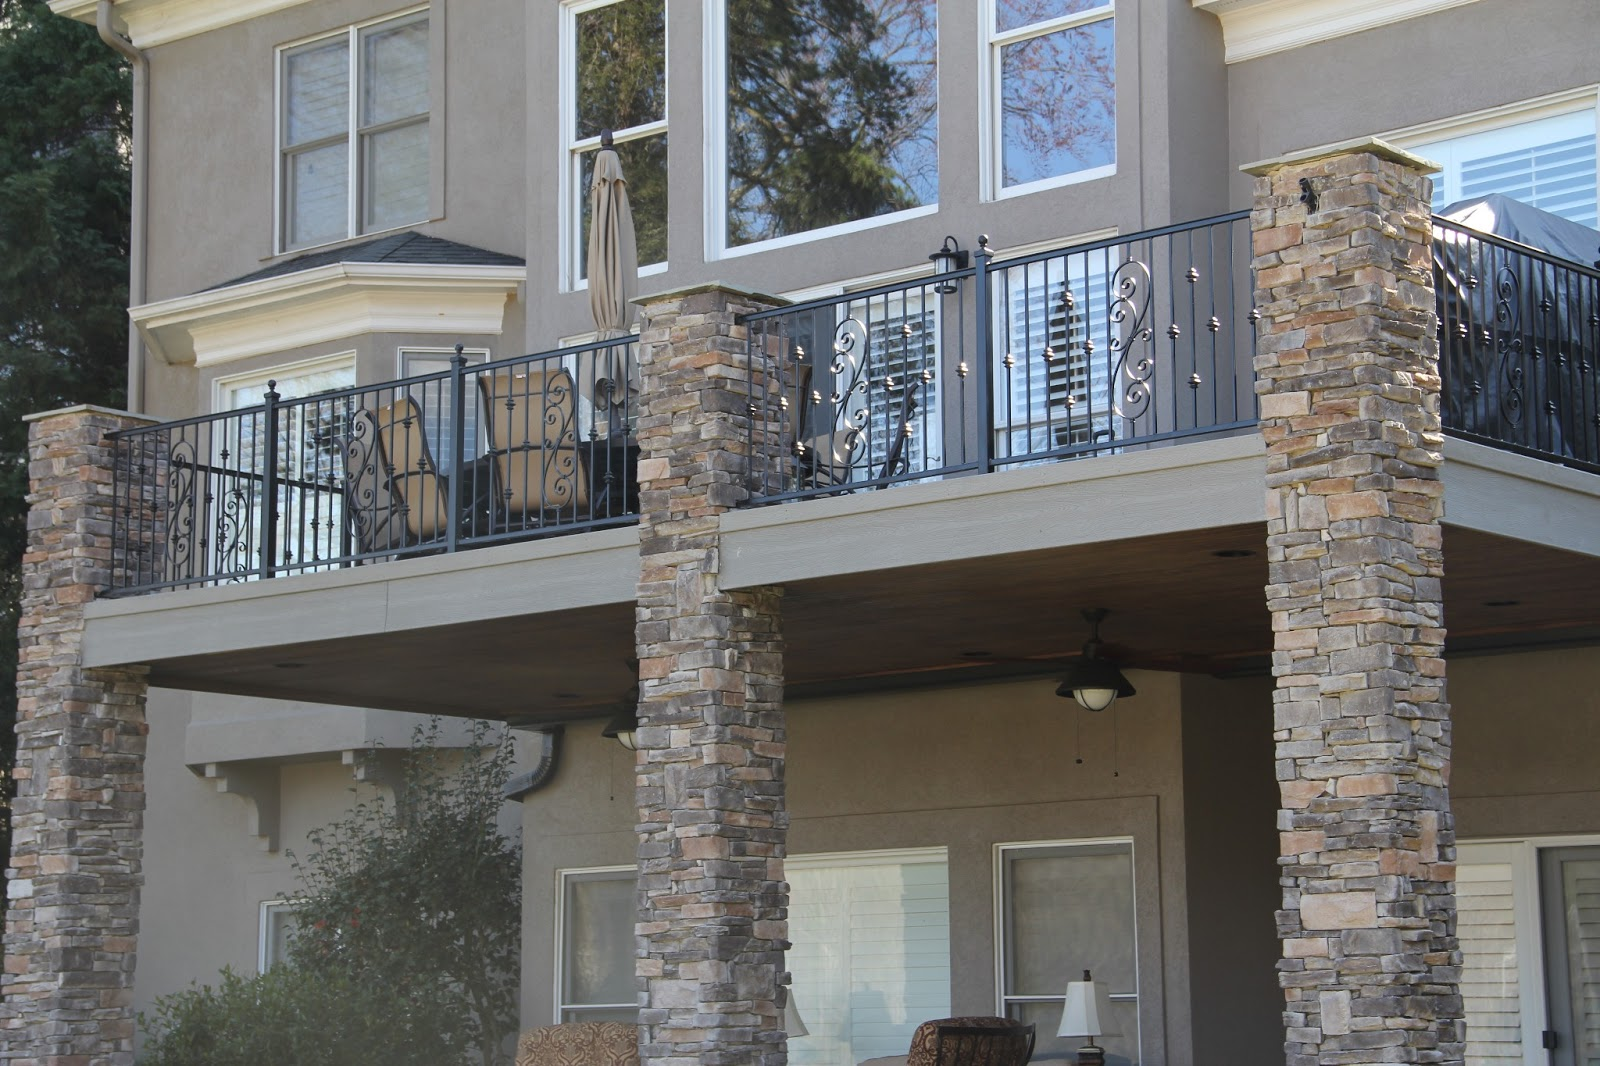 Category › Modern homes wrought iron balcony railing designs ideas.